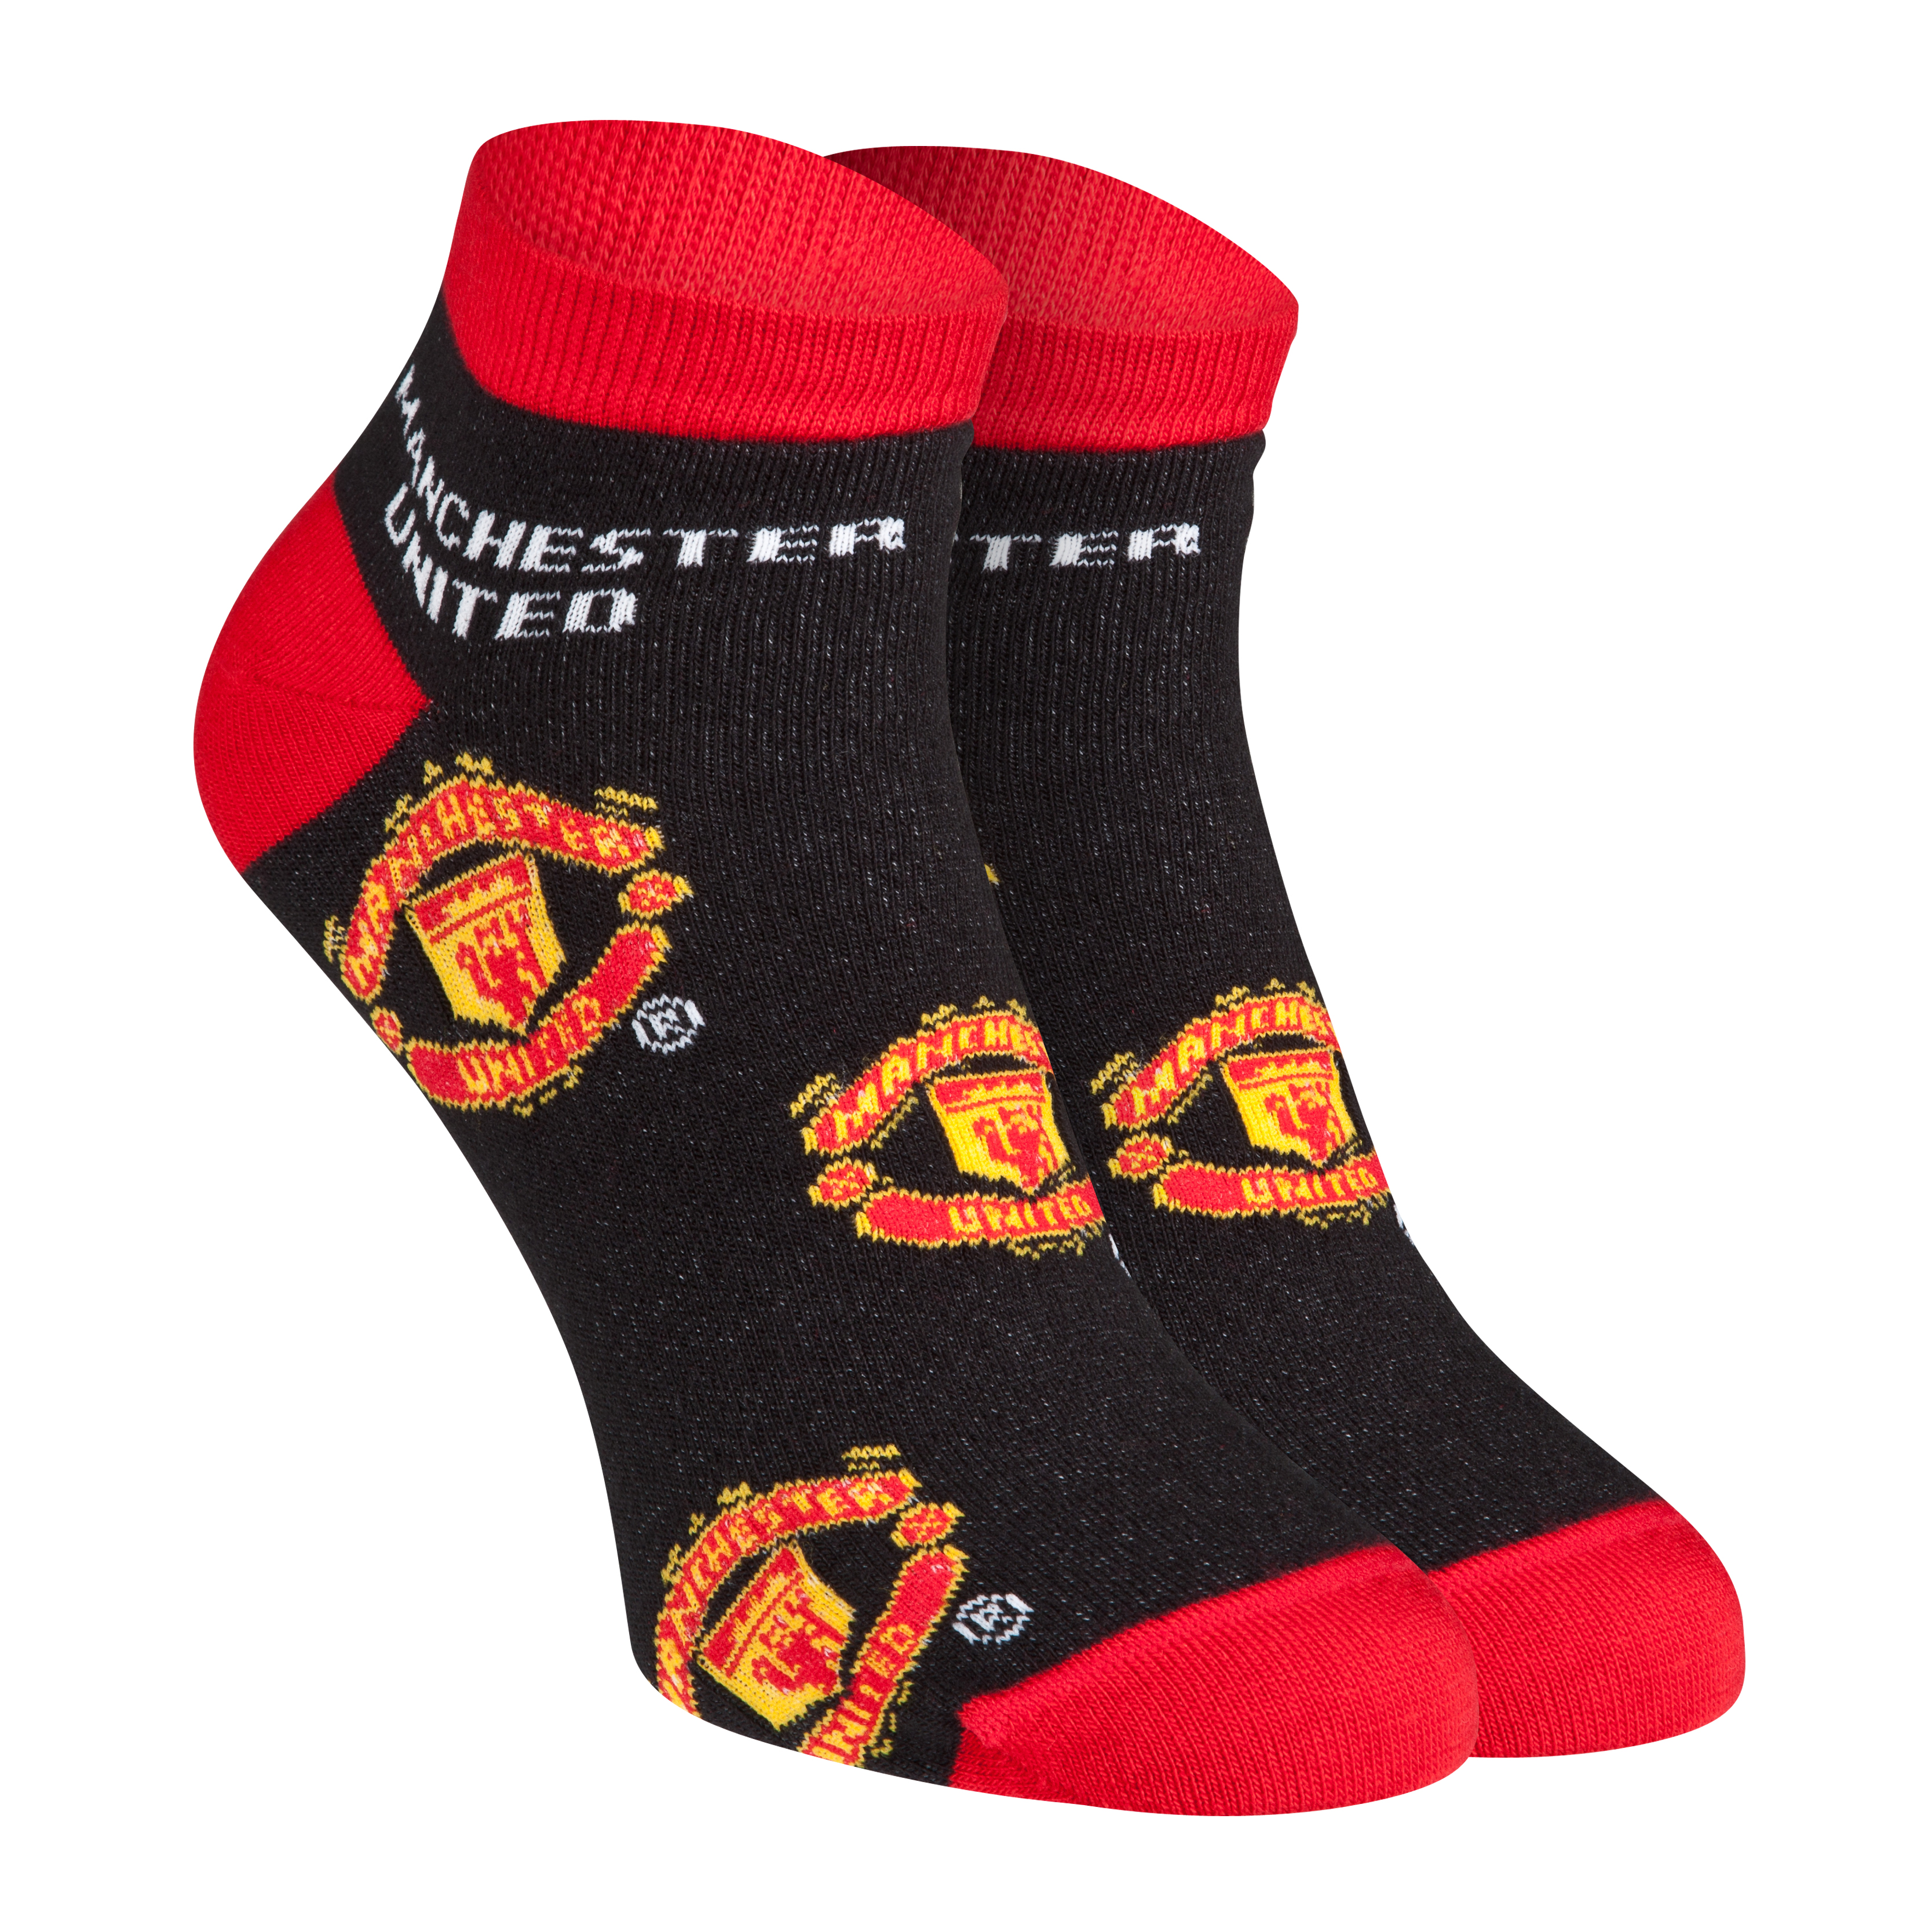 Manchester United Crest Trainer Socks - Black - Womens